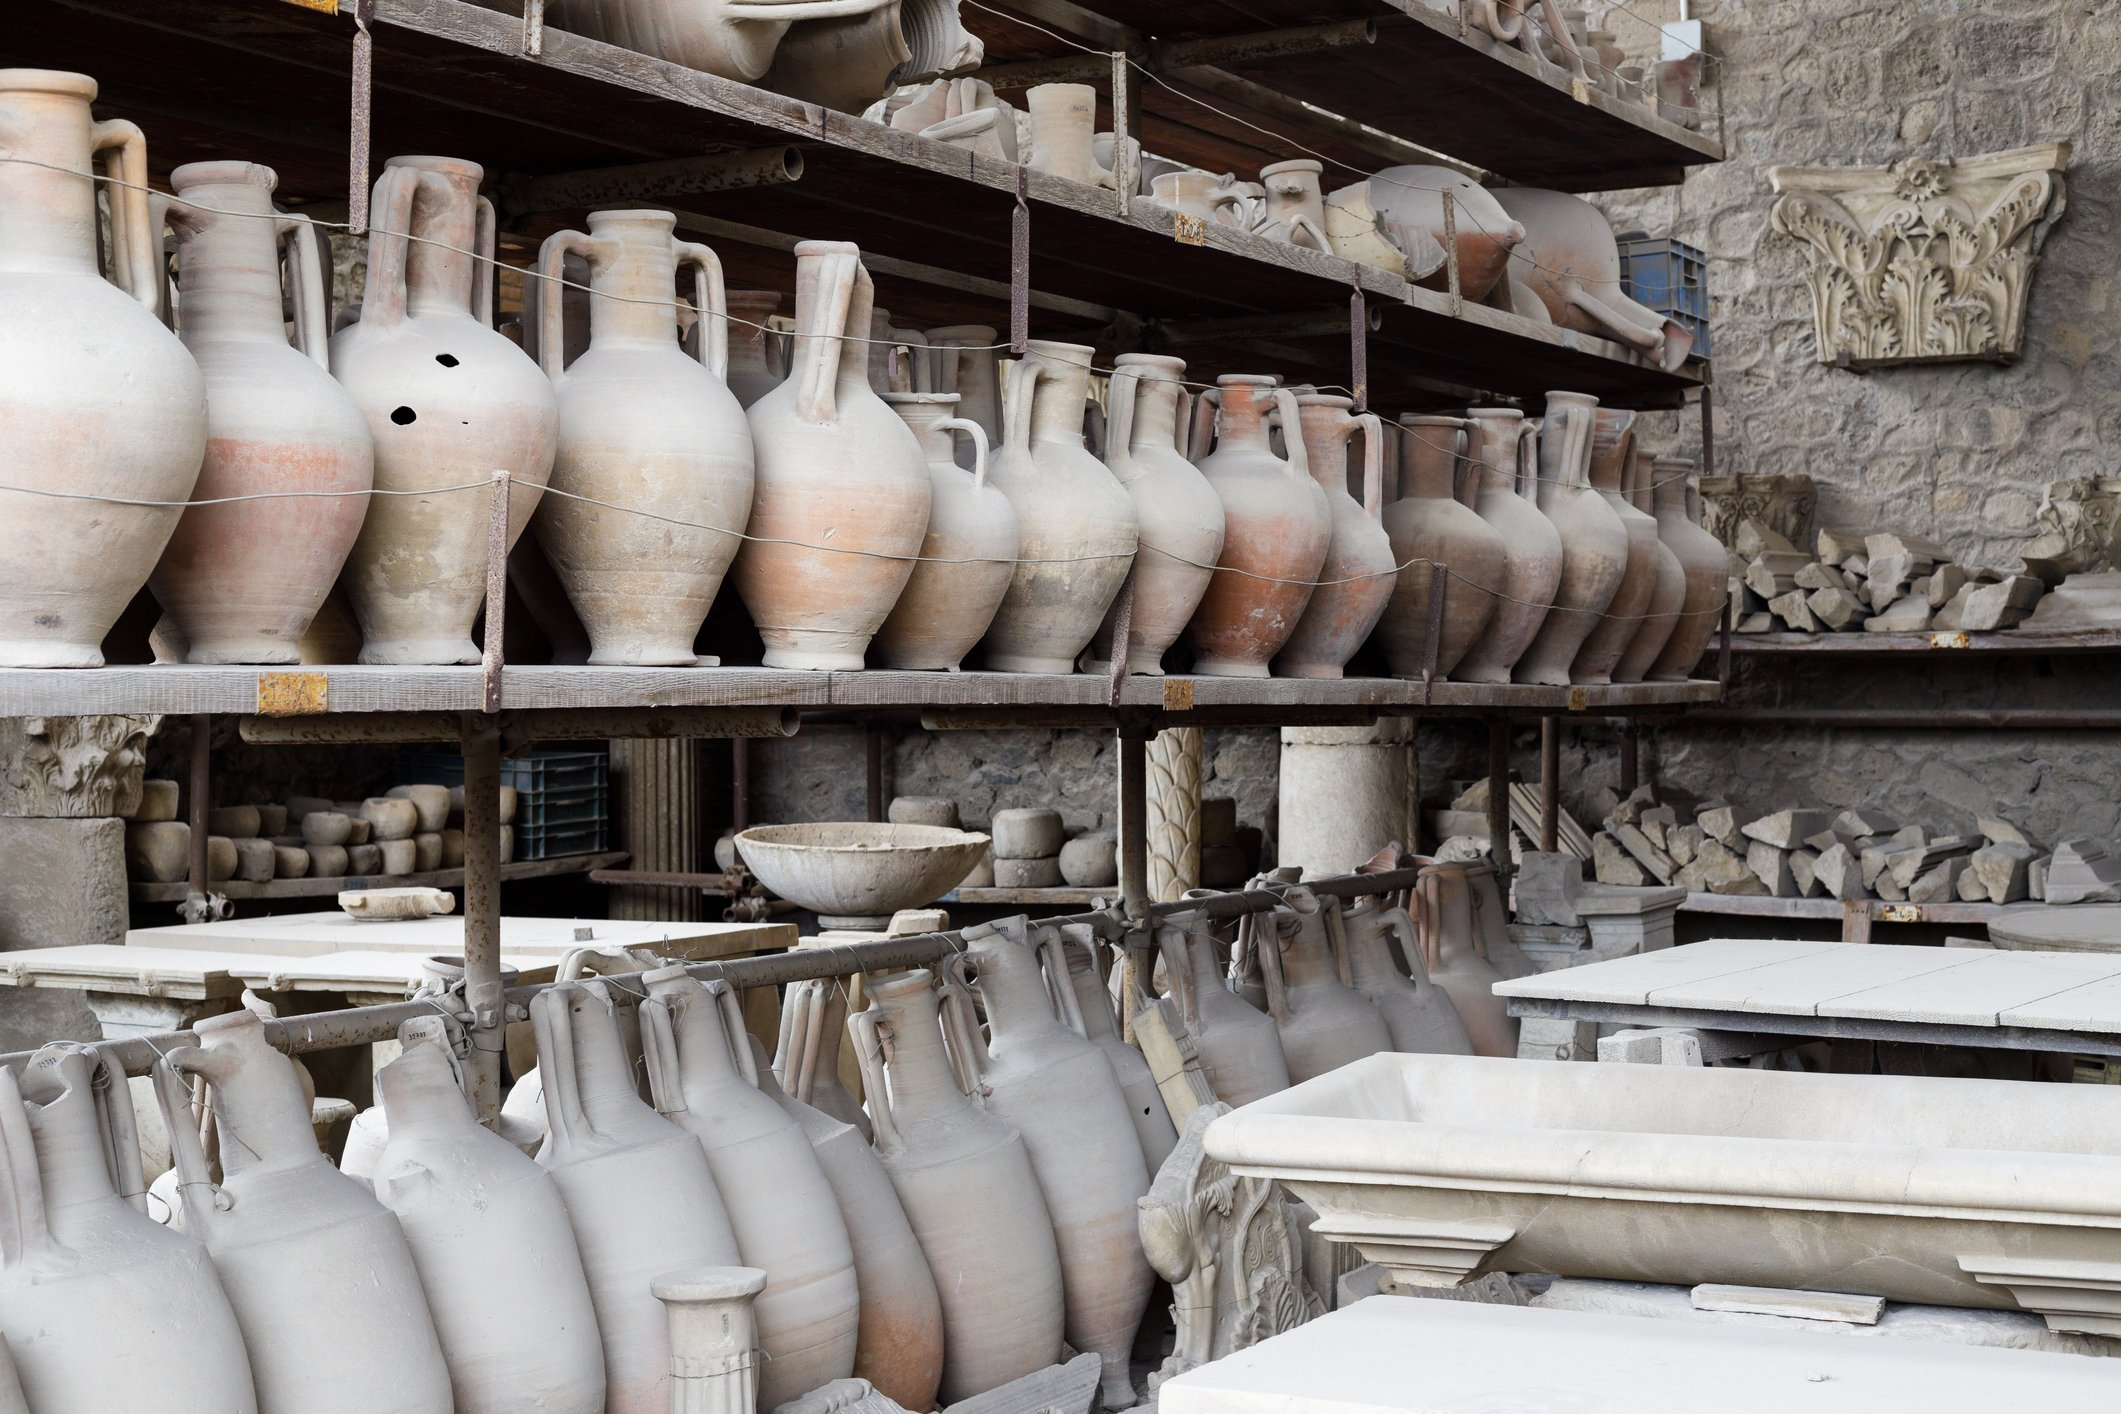 Ancient clay pottery amphora vases and pots from Pompeii in the Roman Empire in Italy. | Photo: Getty Images